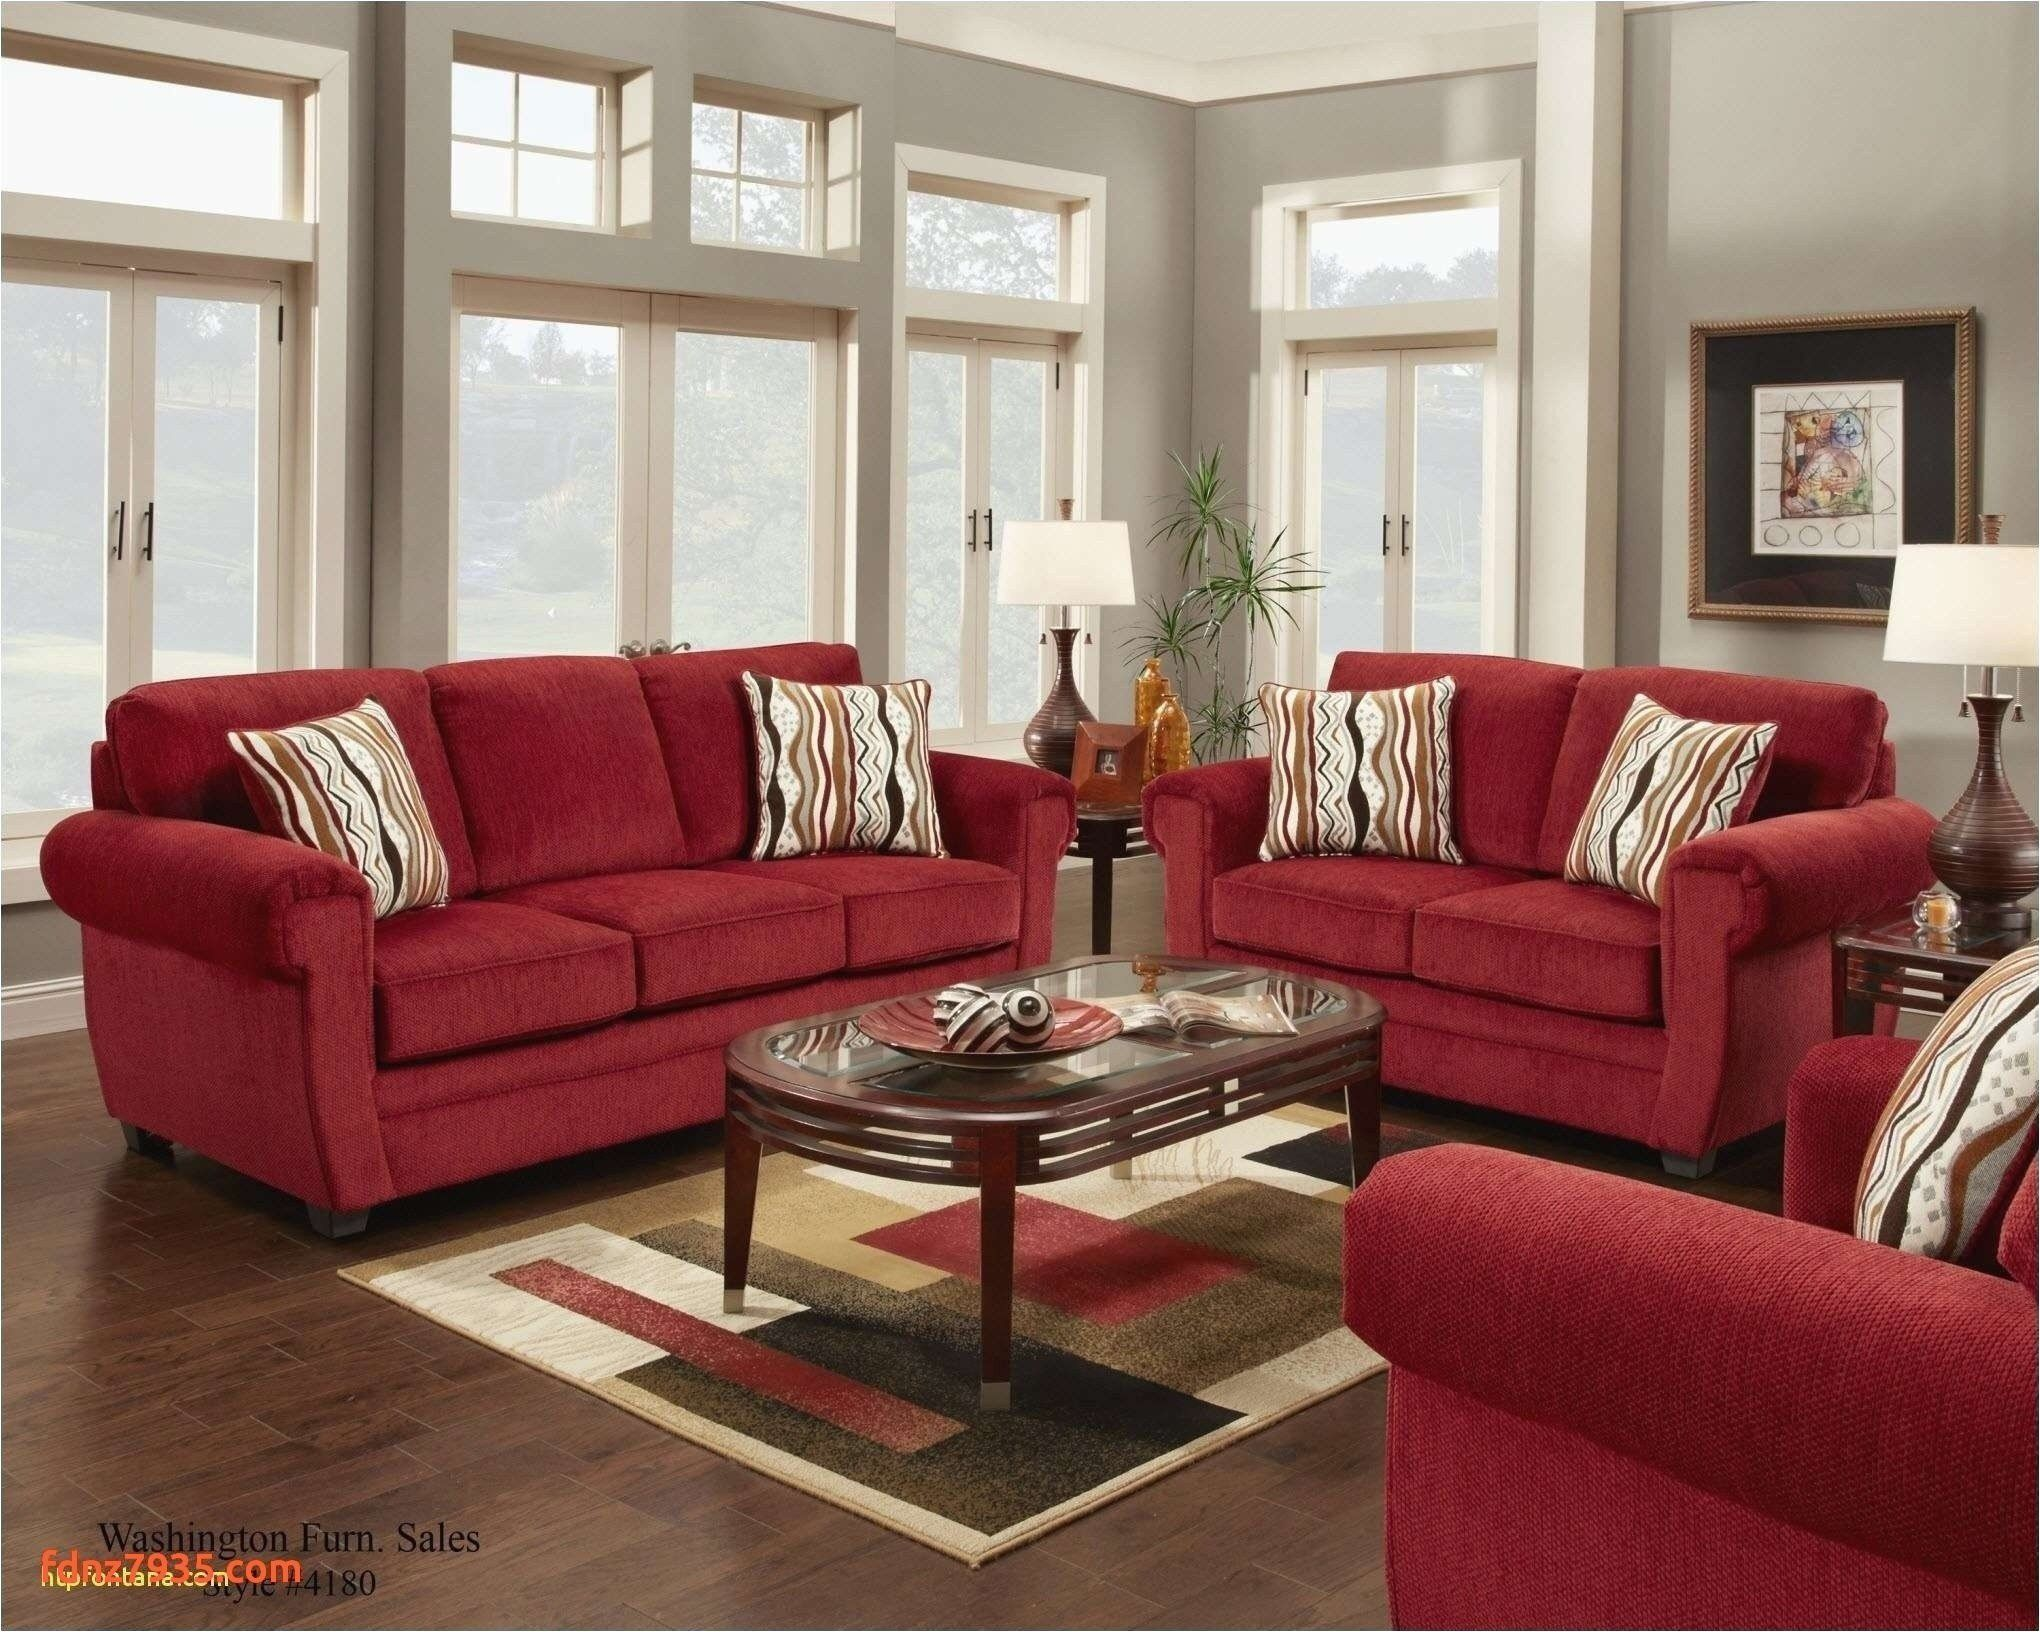 Red Black And Grey Living Room Unique What Paint Color Go With A Red Sofa Fresh Sofa Design Red Furniture Living Room Red Couch Living Room Red Couch Decor